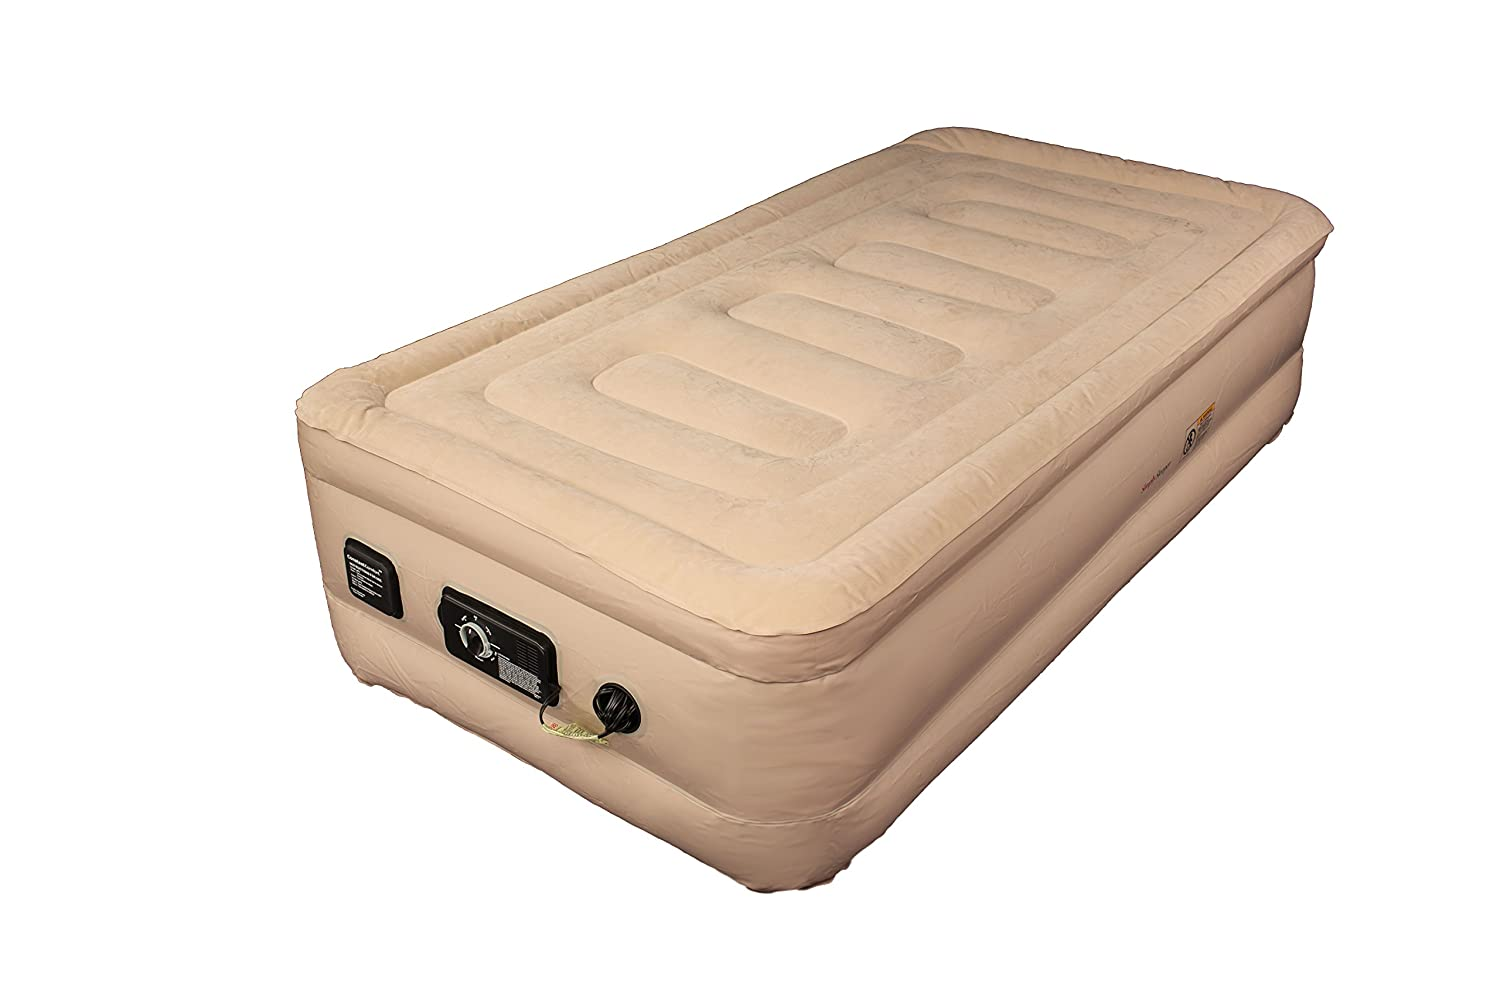 SimplySleeper SS-49T Raised Twin Air Bed (Inflatable Air Mattress) with Built-in Electric Pump